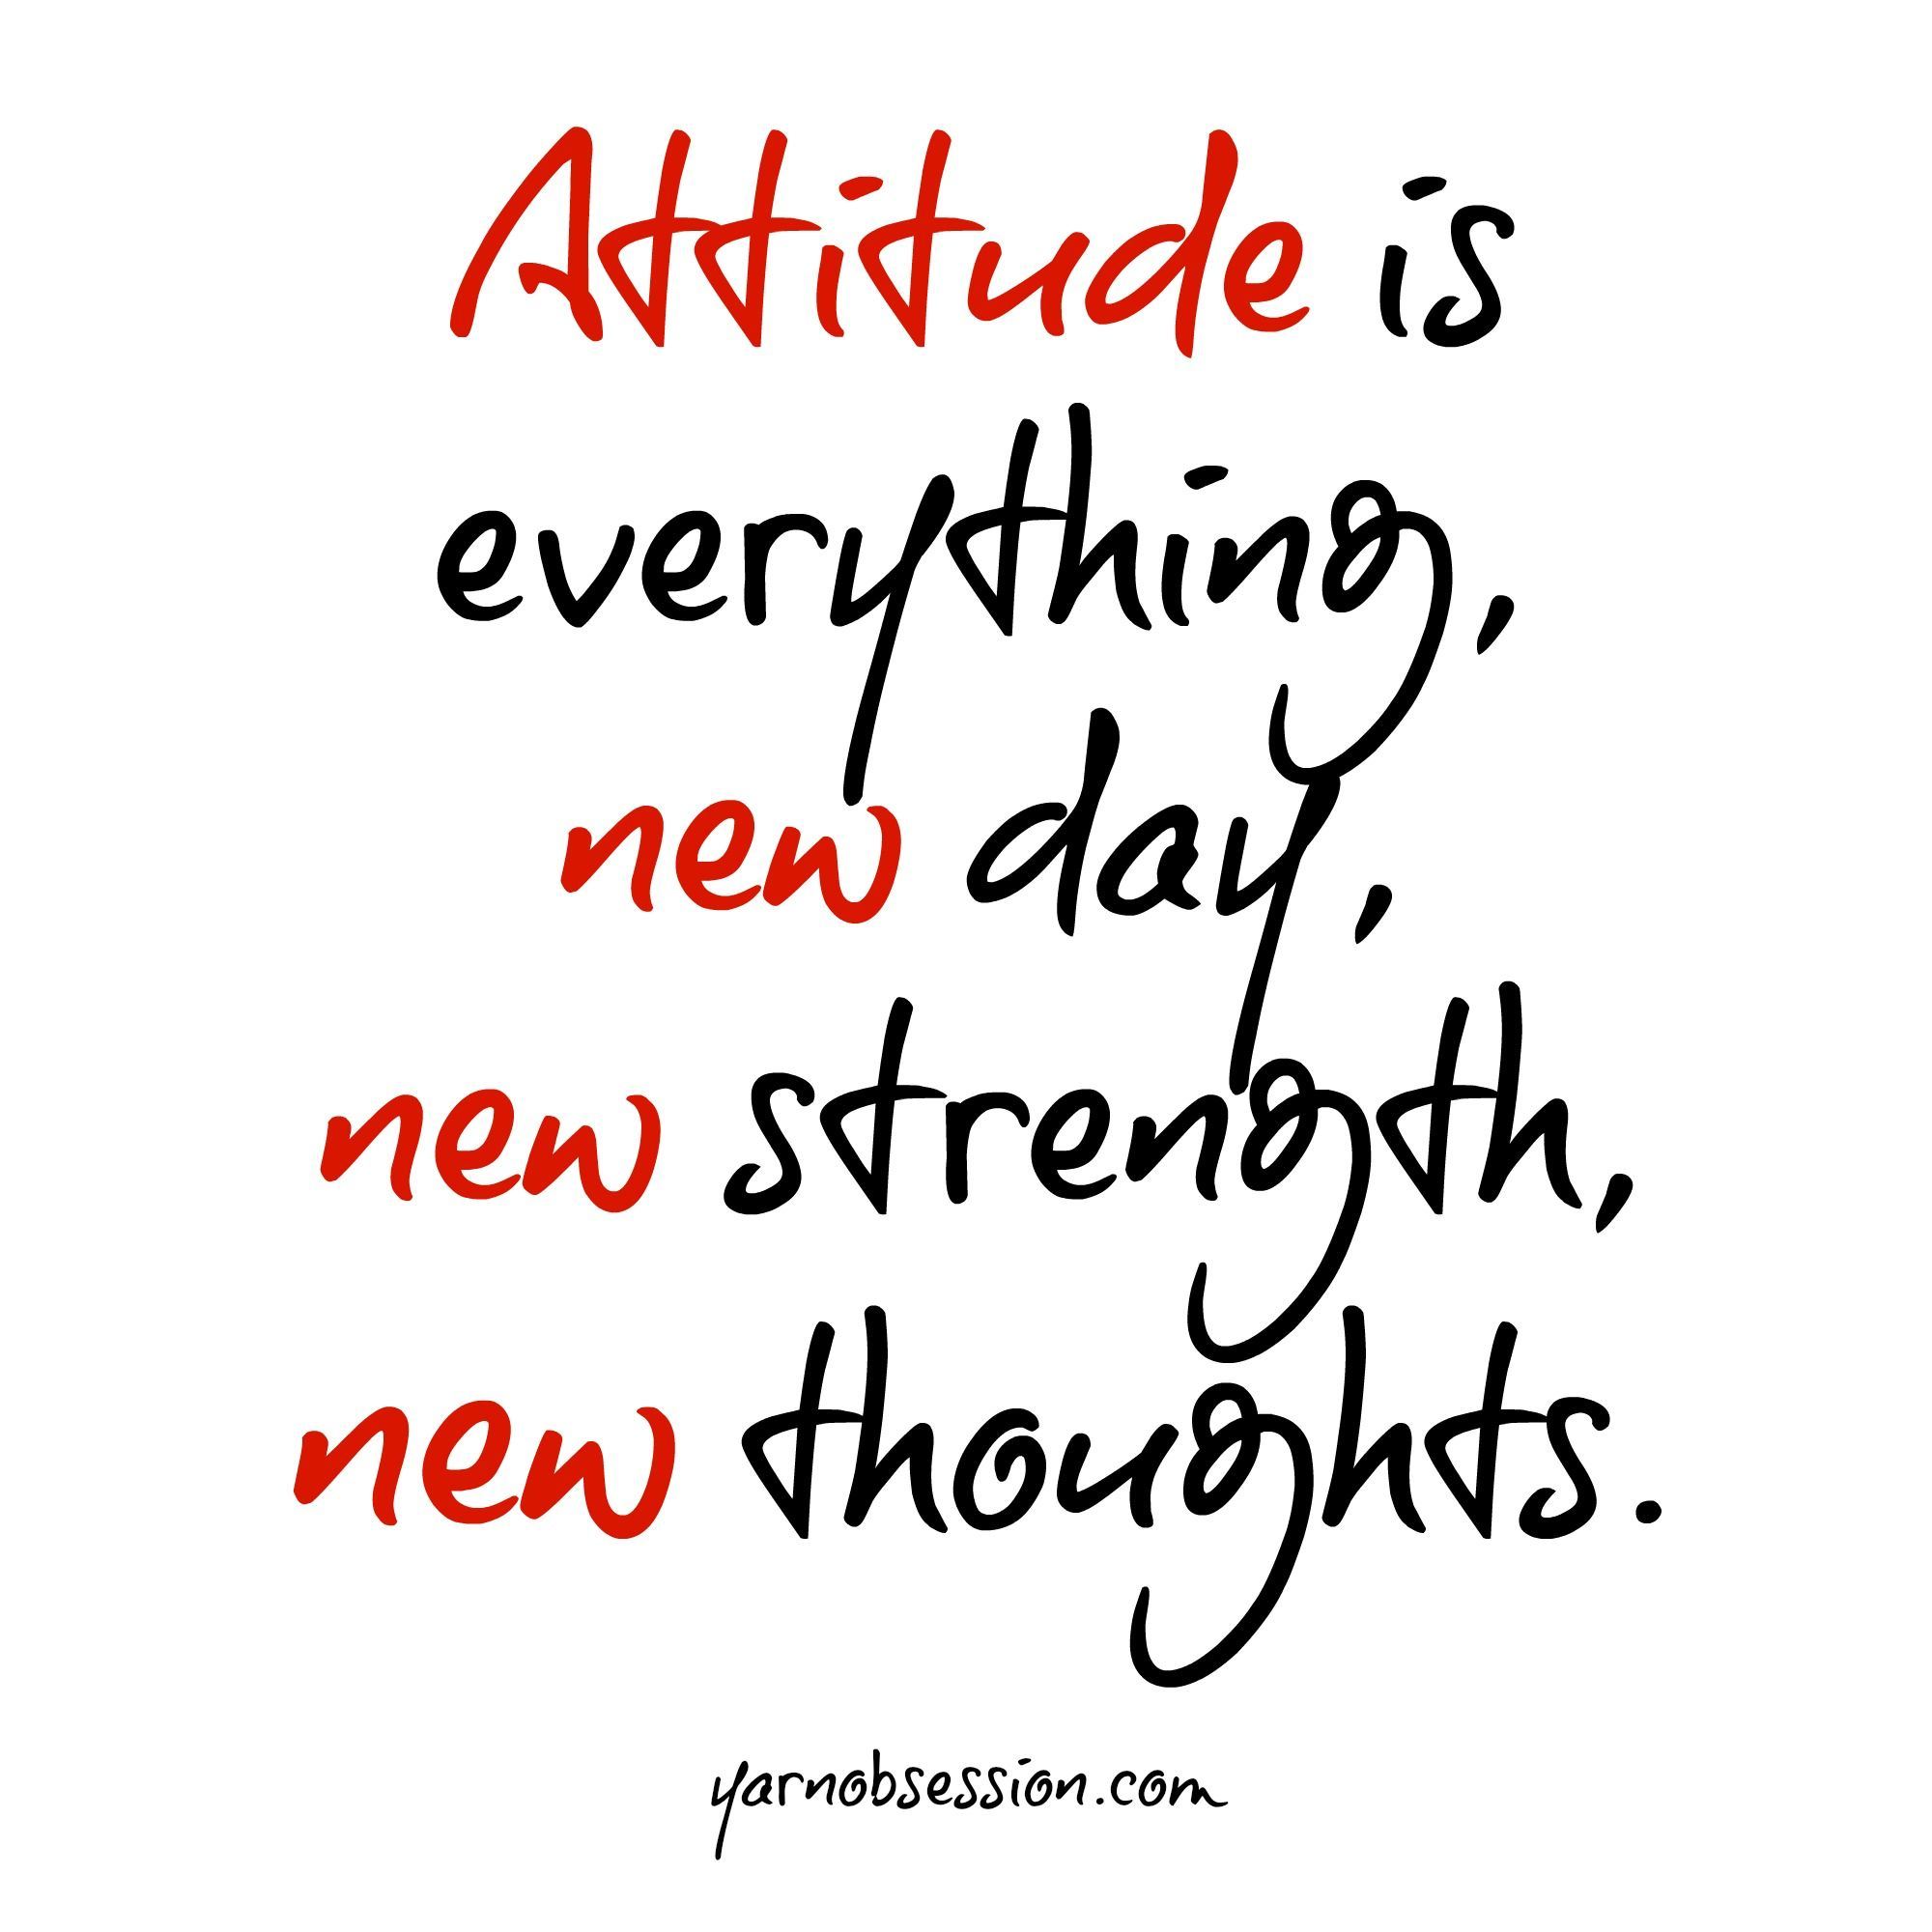 New Attitude Quotes And Sayings: Attitude Is Everything, New Day, New Strength, New